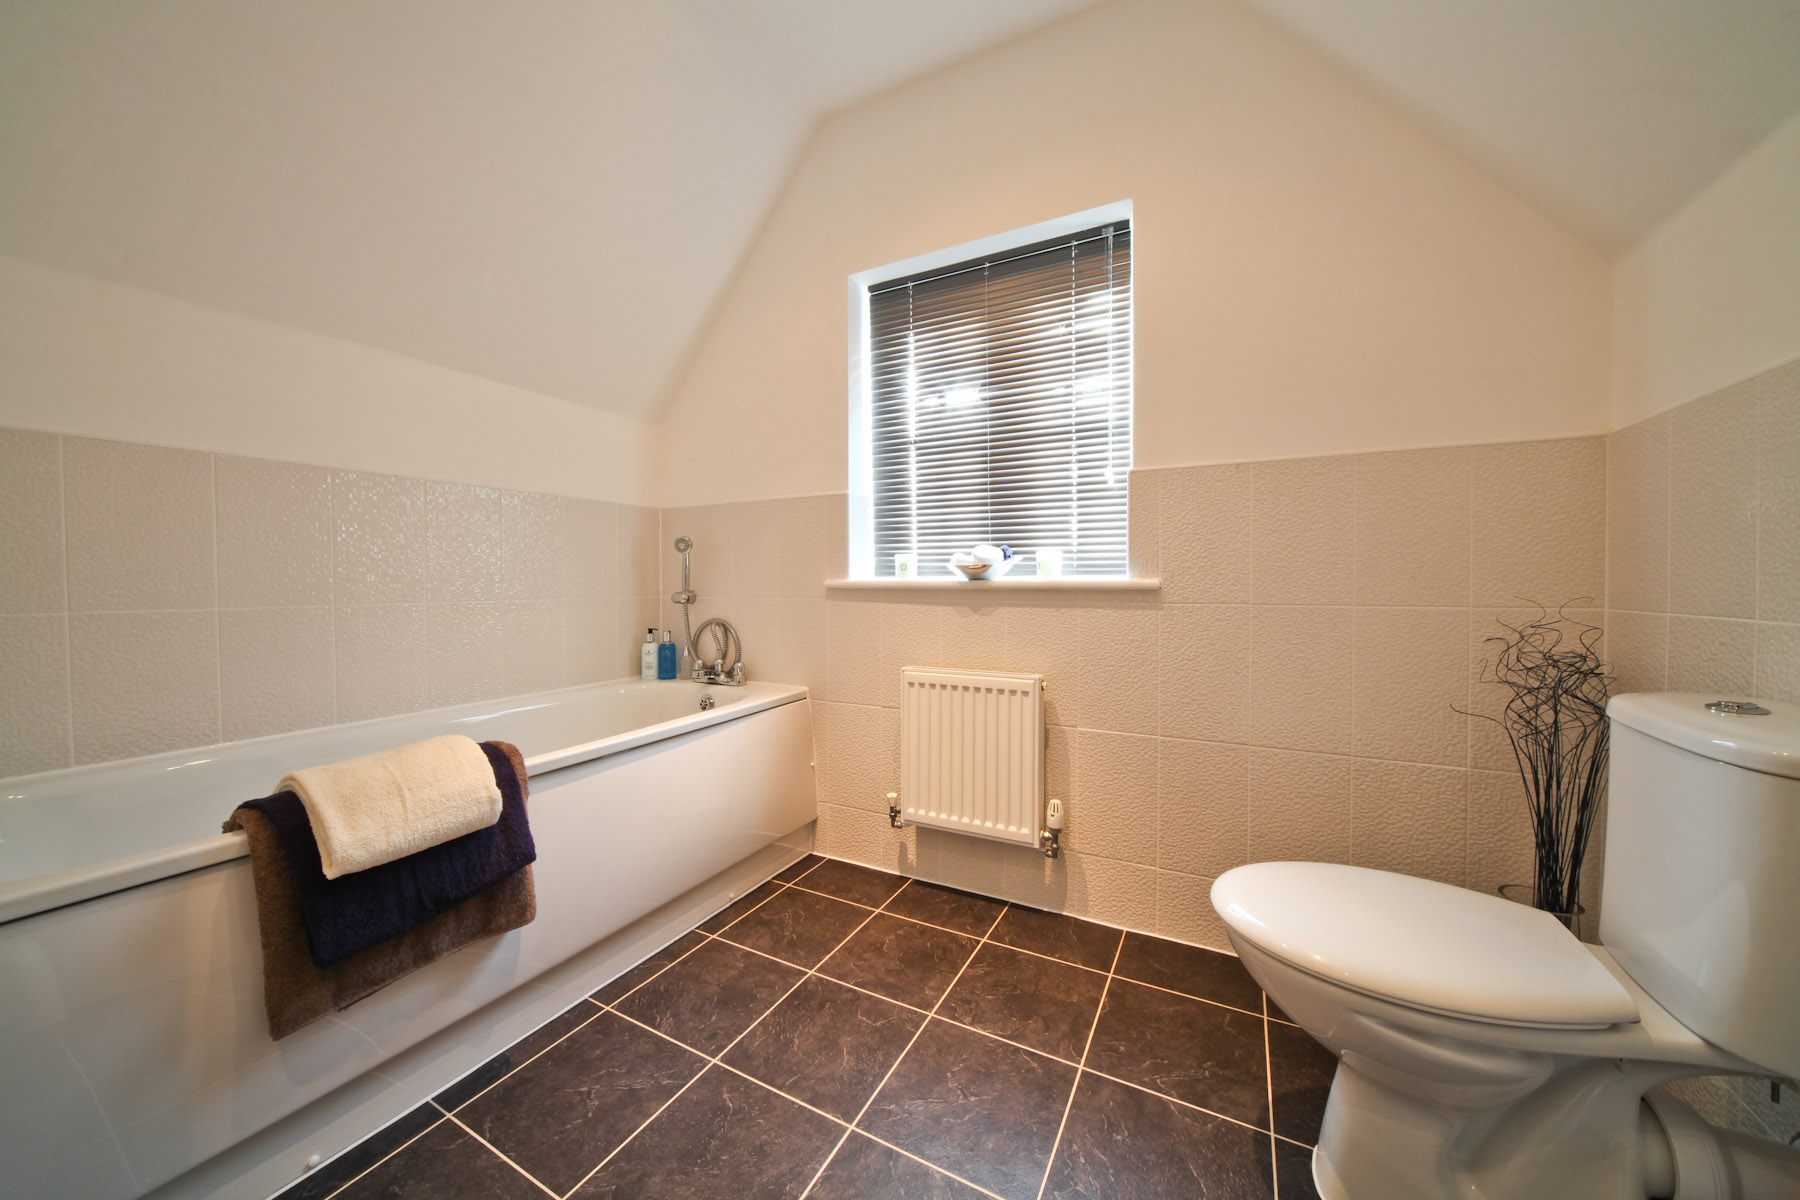 Taylor Wimpey typical bathroom